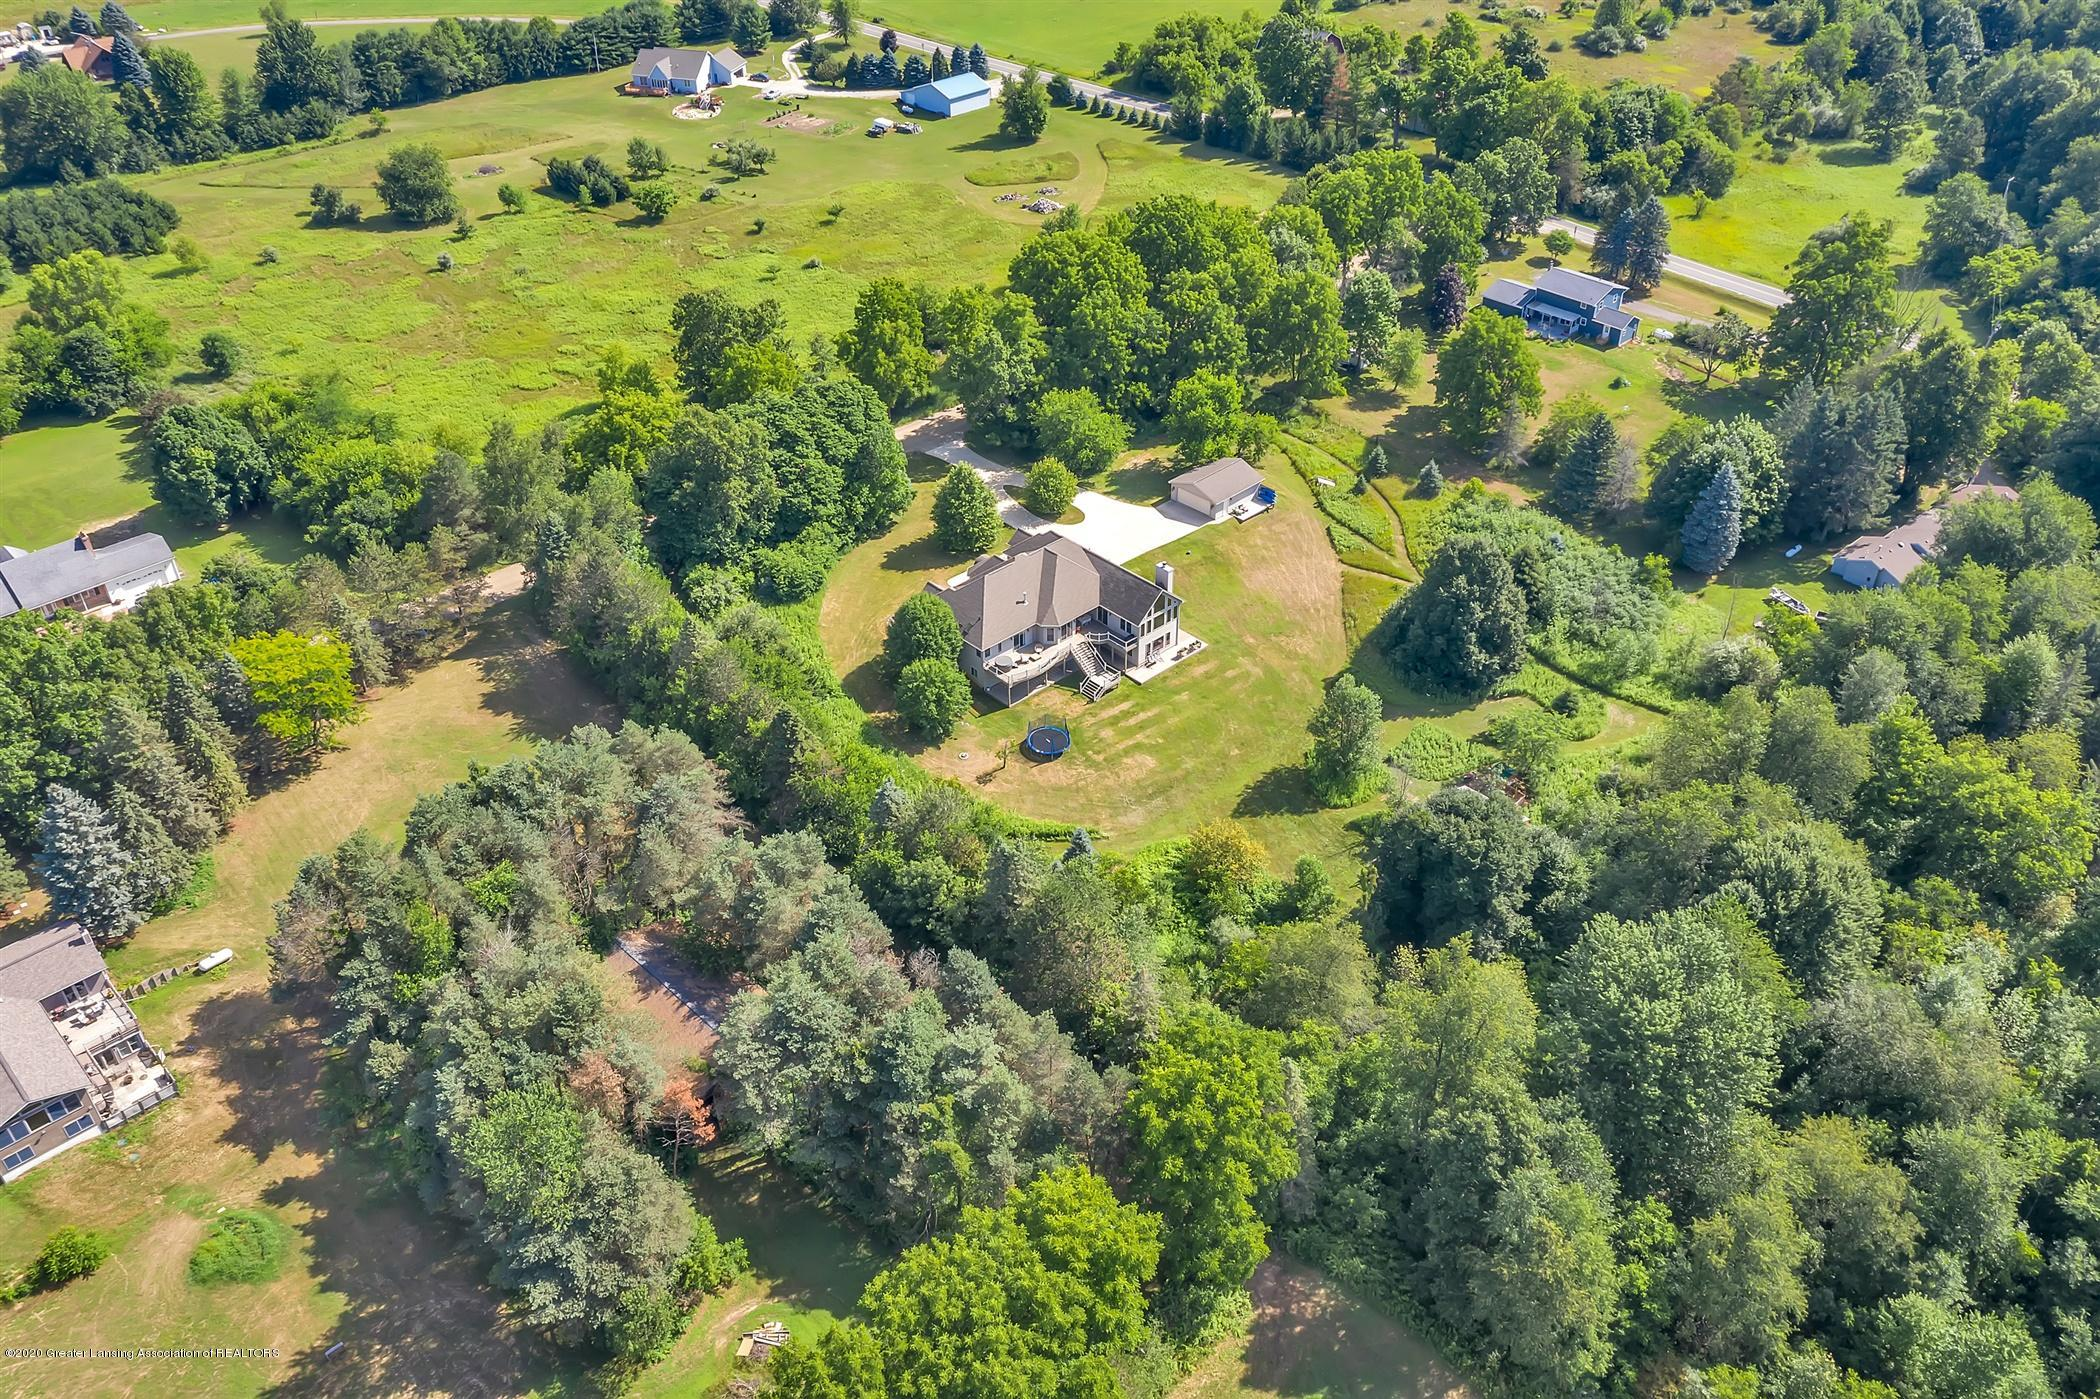 6255 Tyrrell Rd - Aerial View - 68